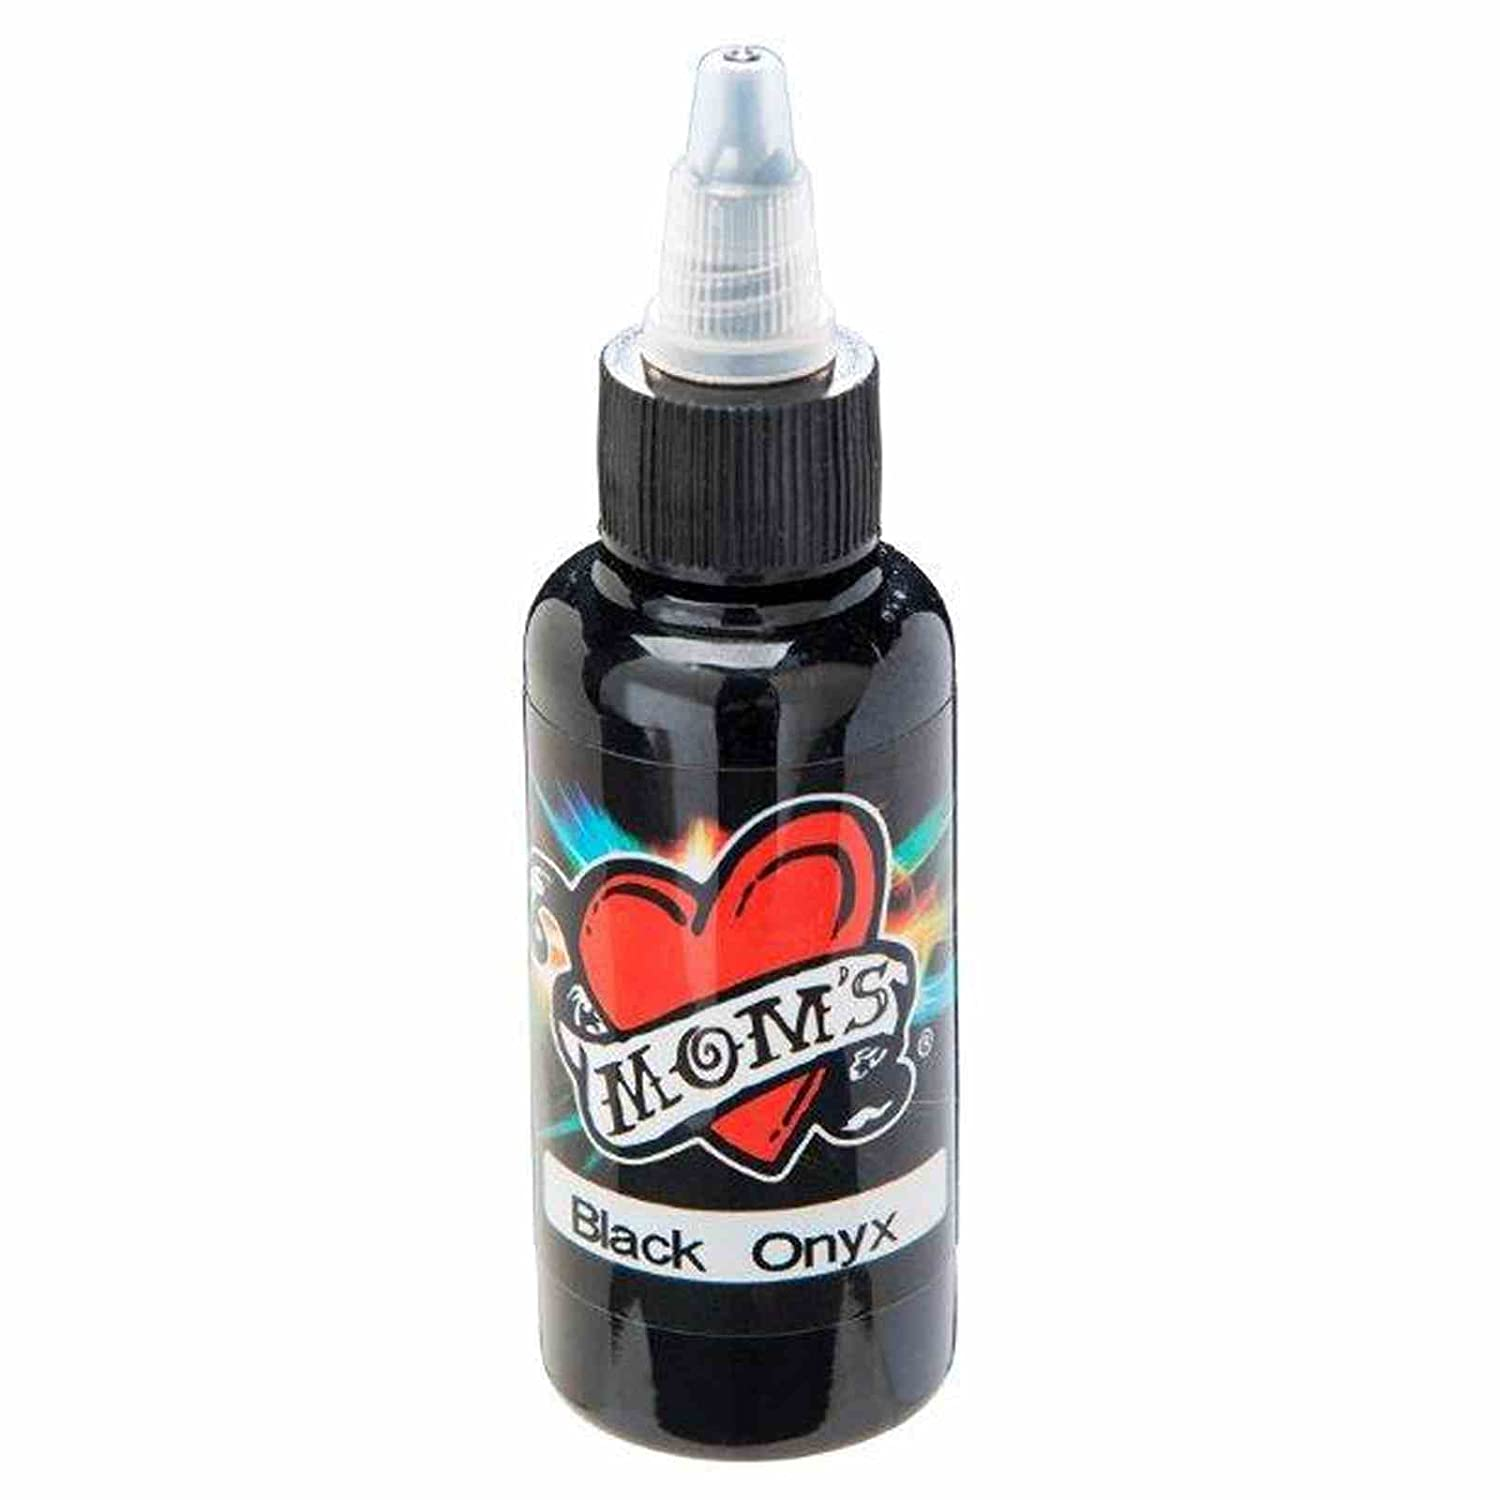 MOM'S Tattoo Ink New product!! Super Special SALE held - Oz. Black Onyx 1